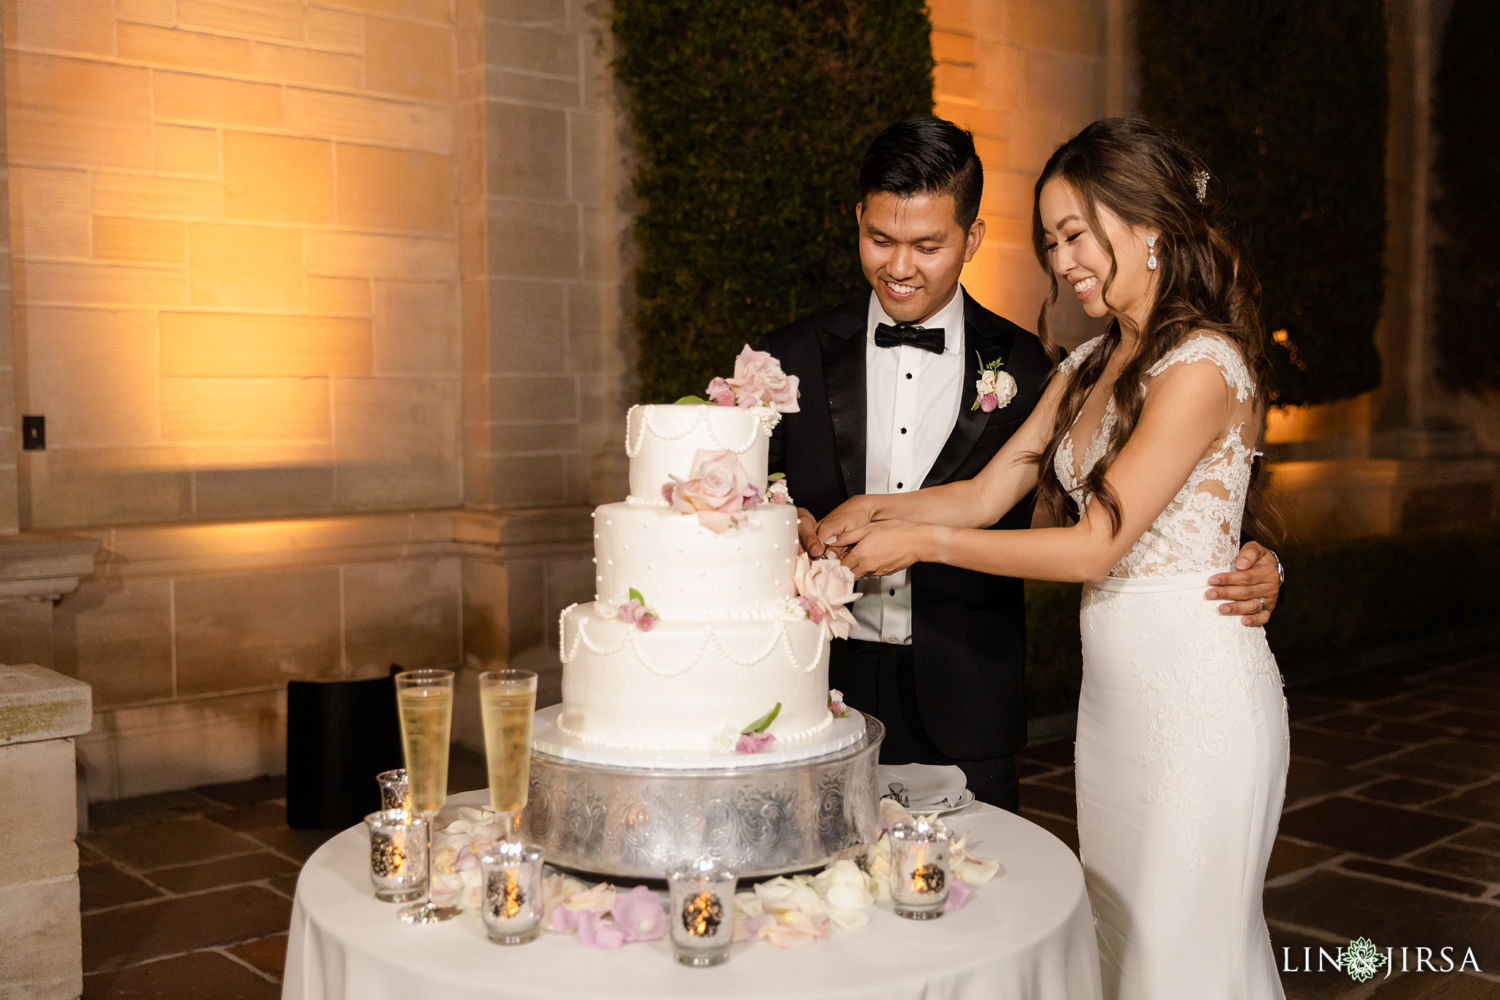 Cake Cutting Greystone Mansion Wedding Beverly Hills Reception